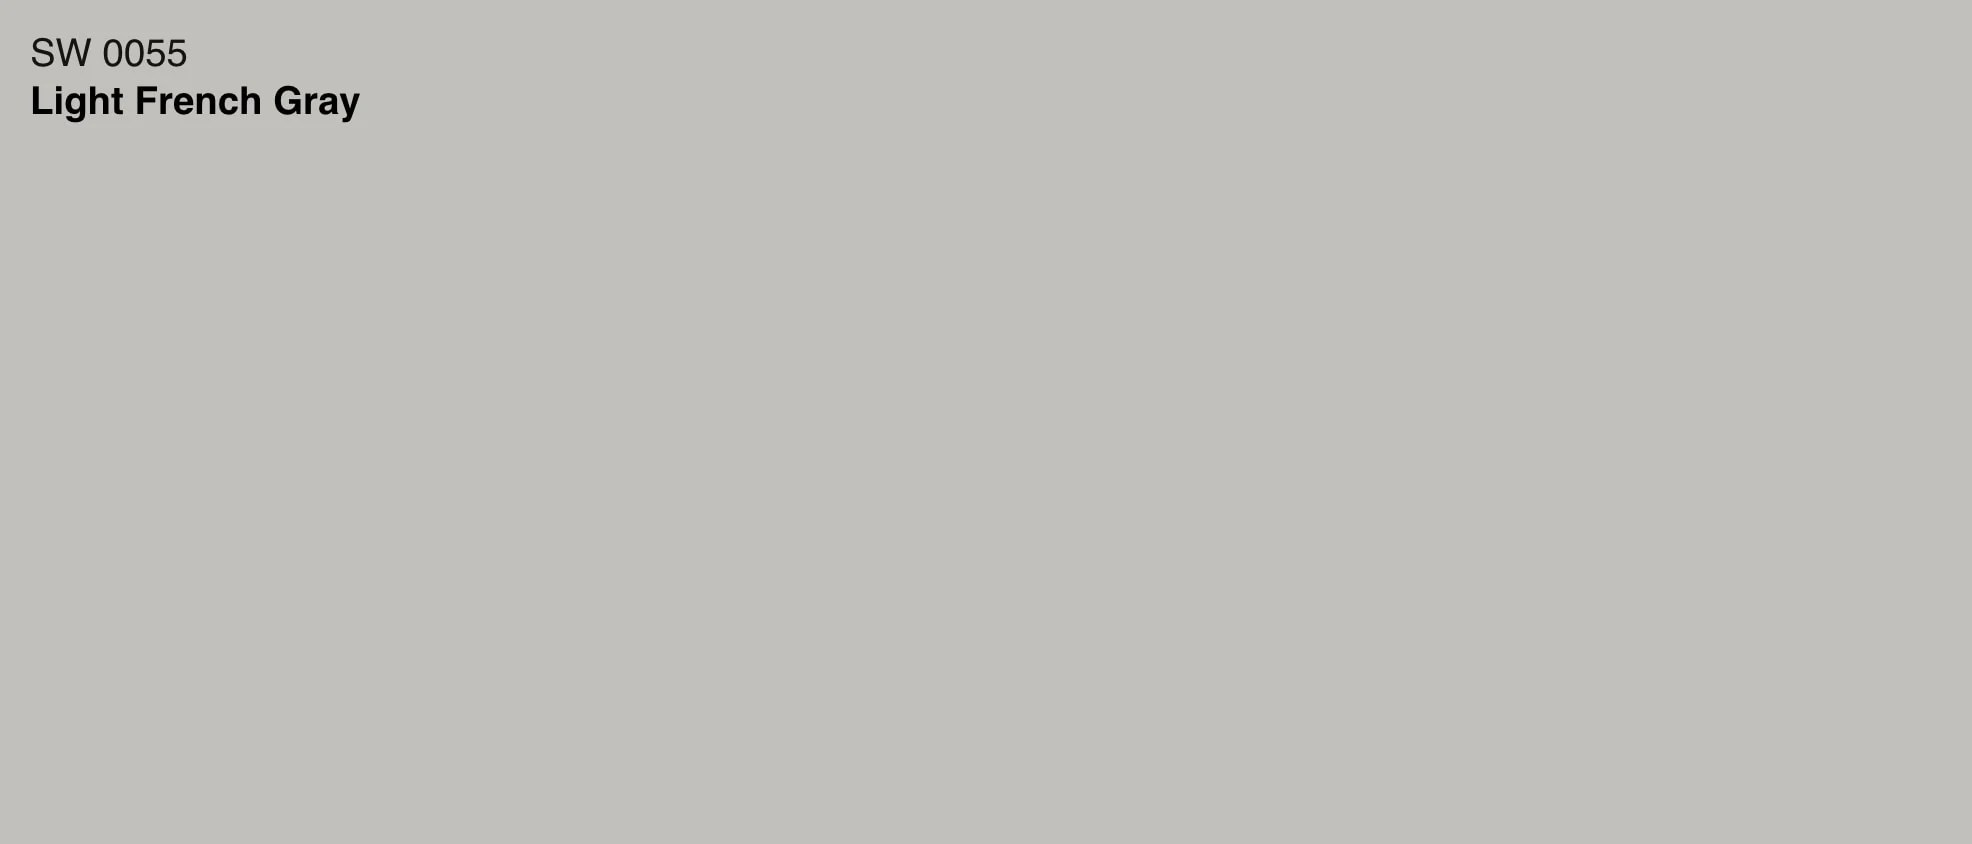 SW 0055 Light French Gray color swatch